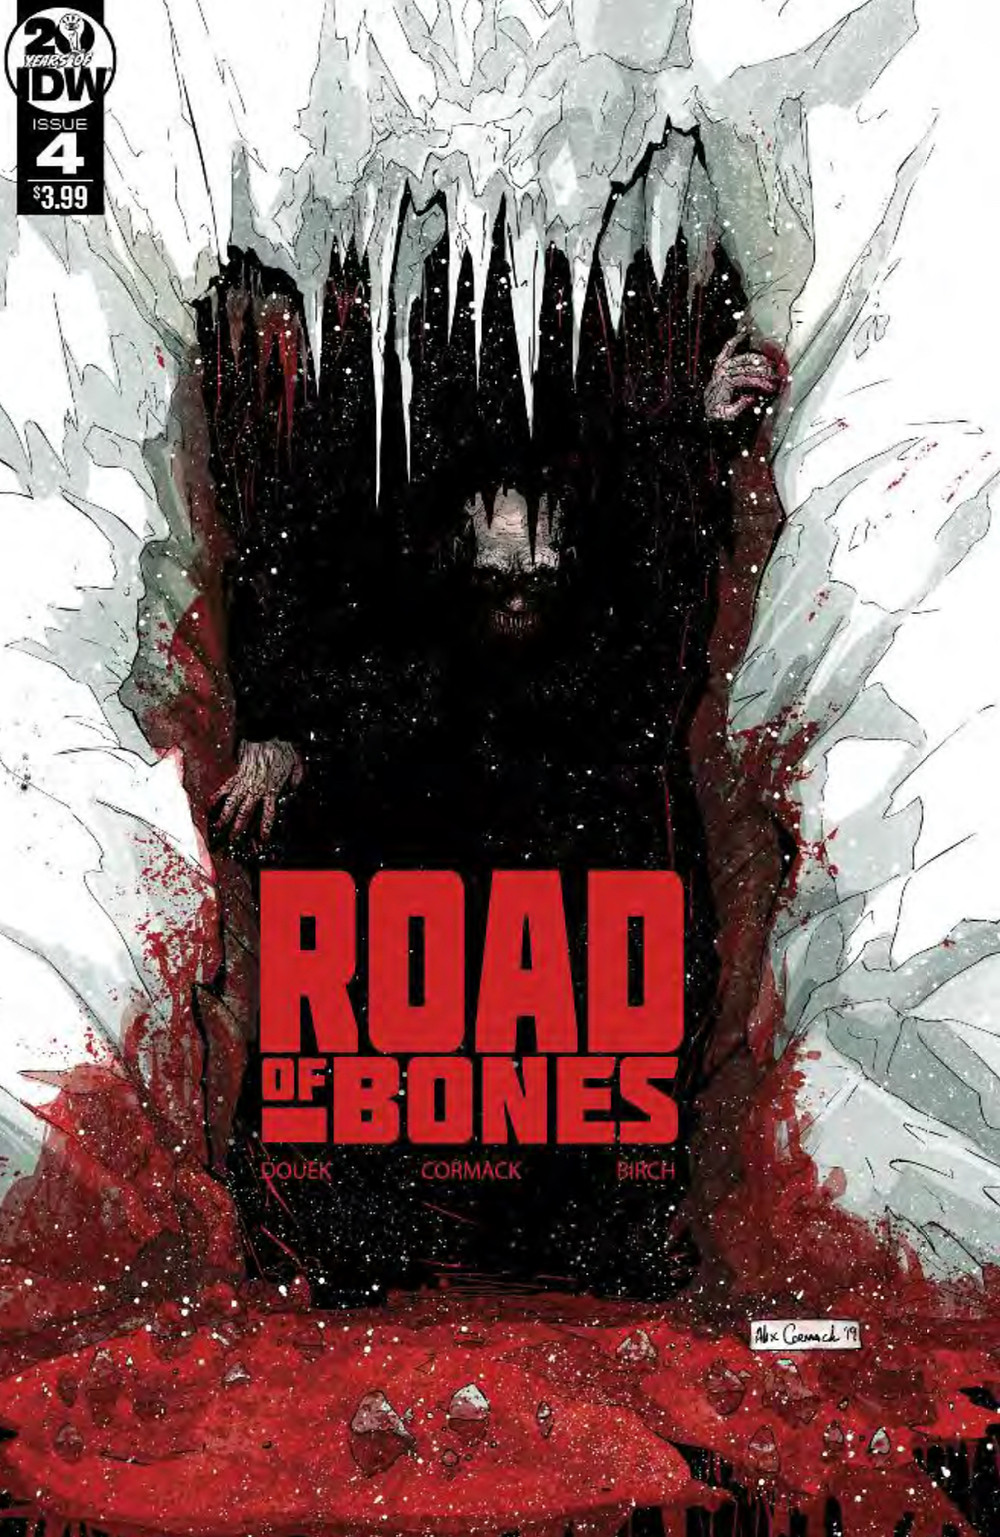 Road of Bones, issue #4, cover, IDW, Douek/Cormack